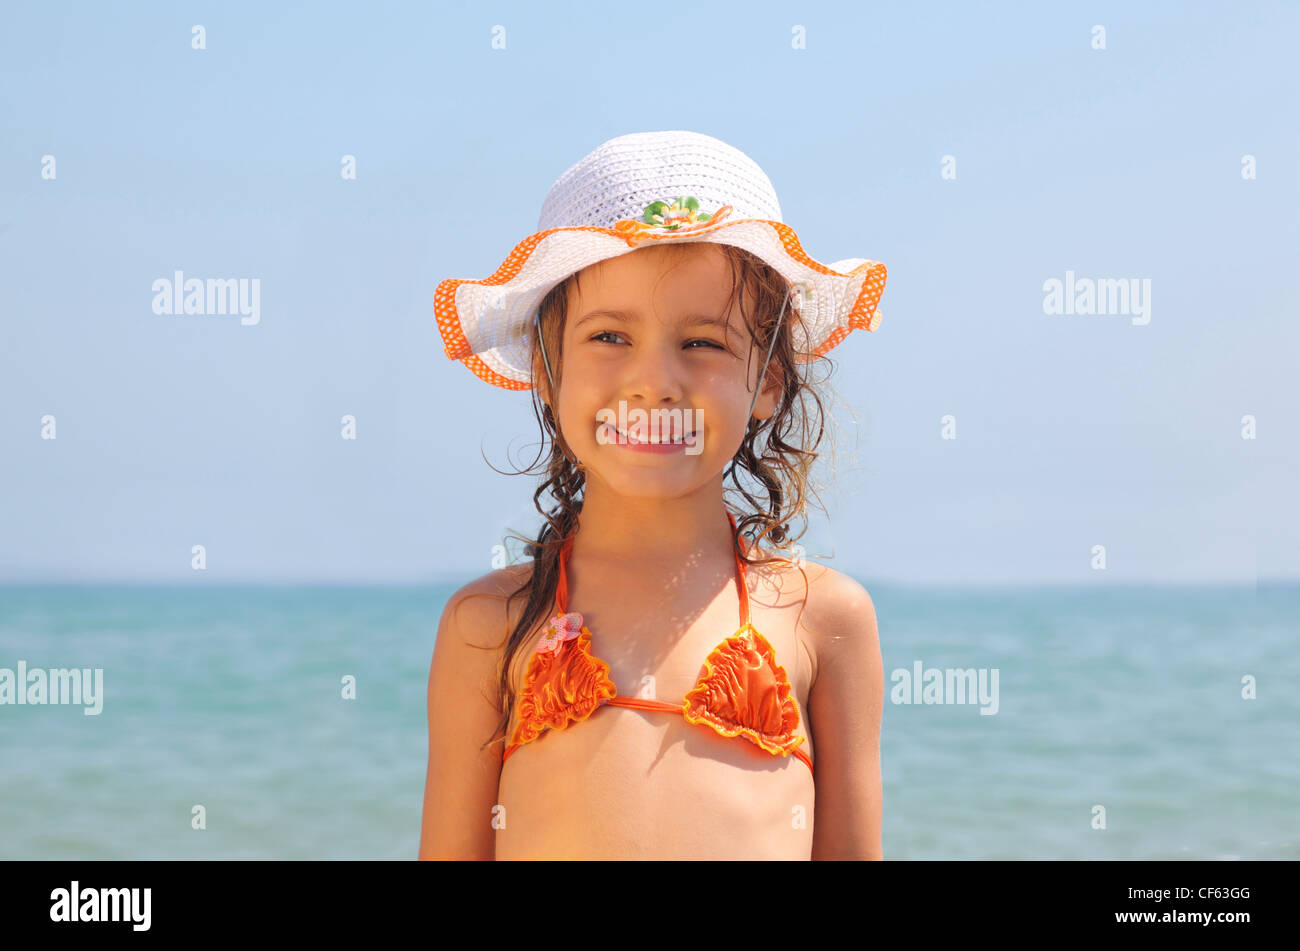 37057c66cd79a beautiful little girl, dressed in bathing suit and hat standing on beach.